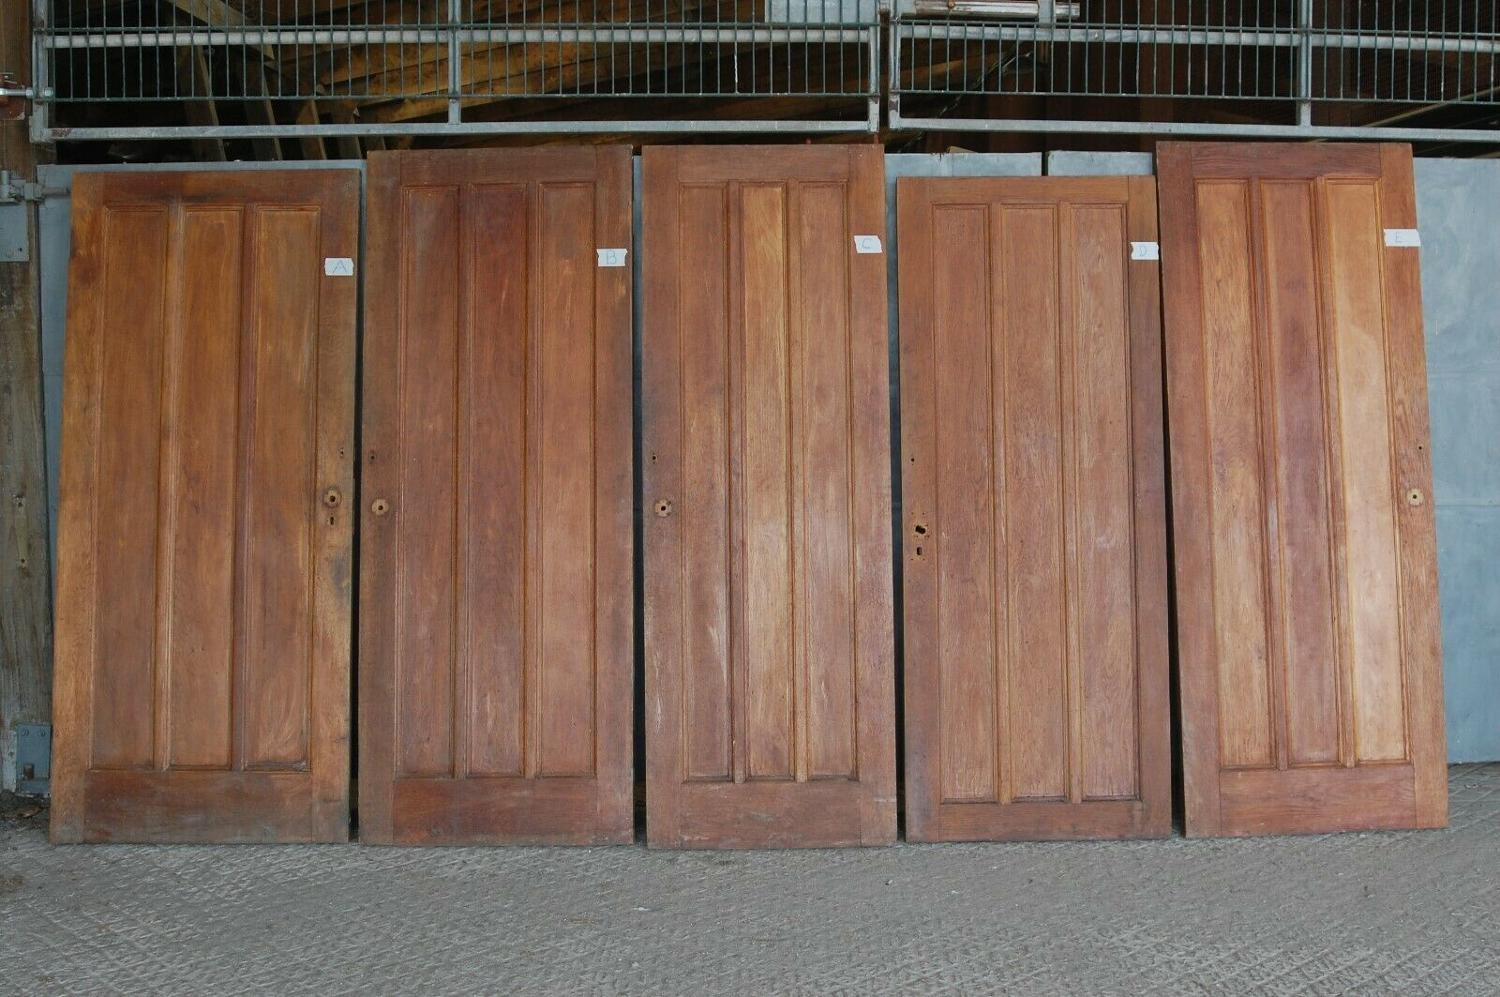 DI0681 EDWARDIAN OAK INTERNAL PANELLED DOOR - 5 AVAILABLE- SOLD SEP